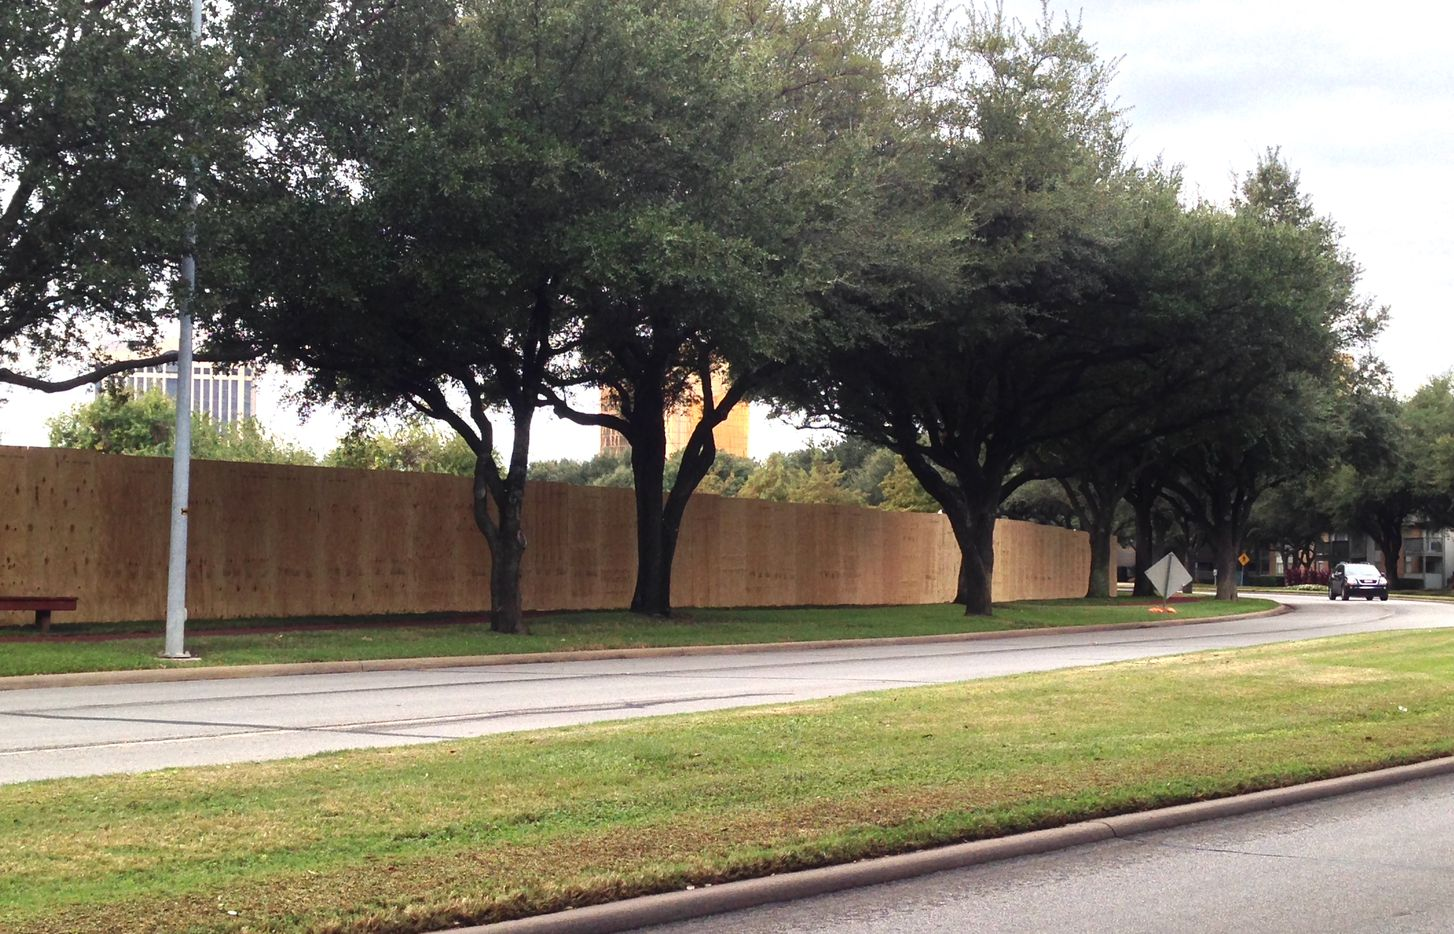 Construction fencing stretches along Southwestern Boulevard in The Village.